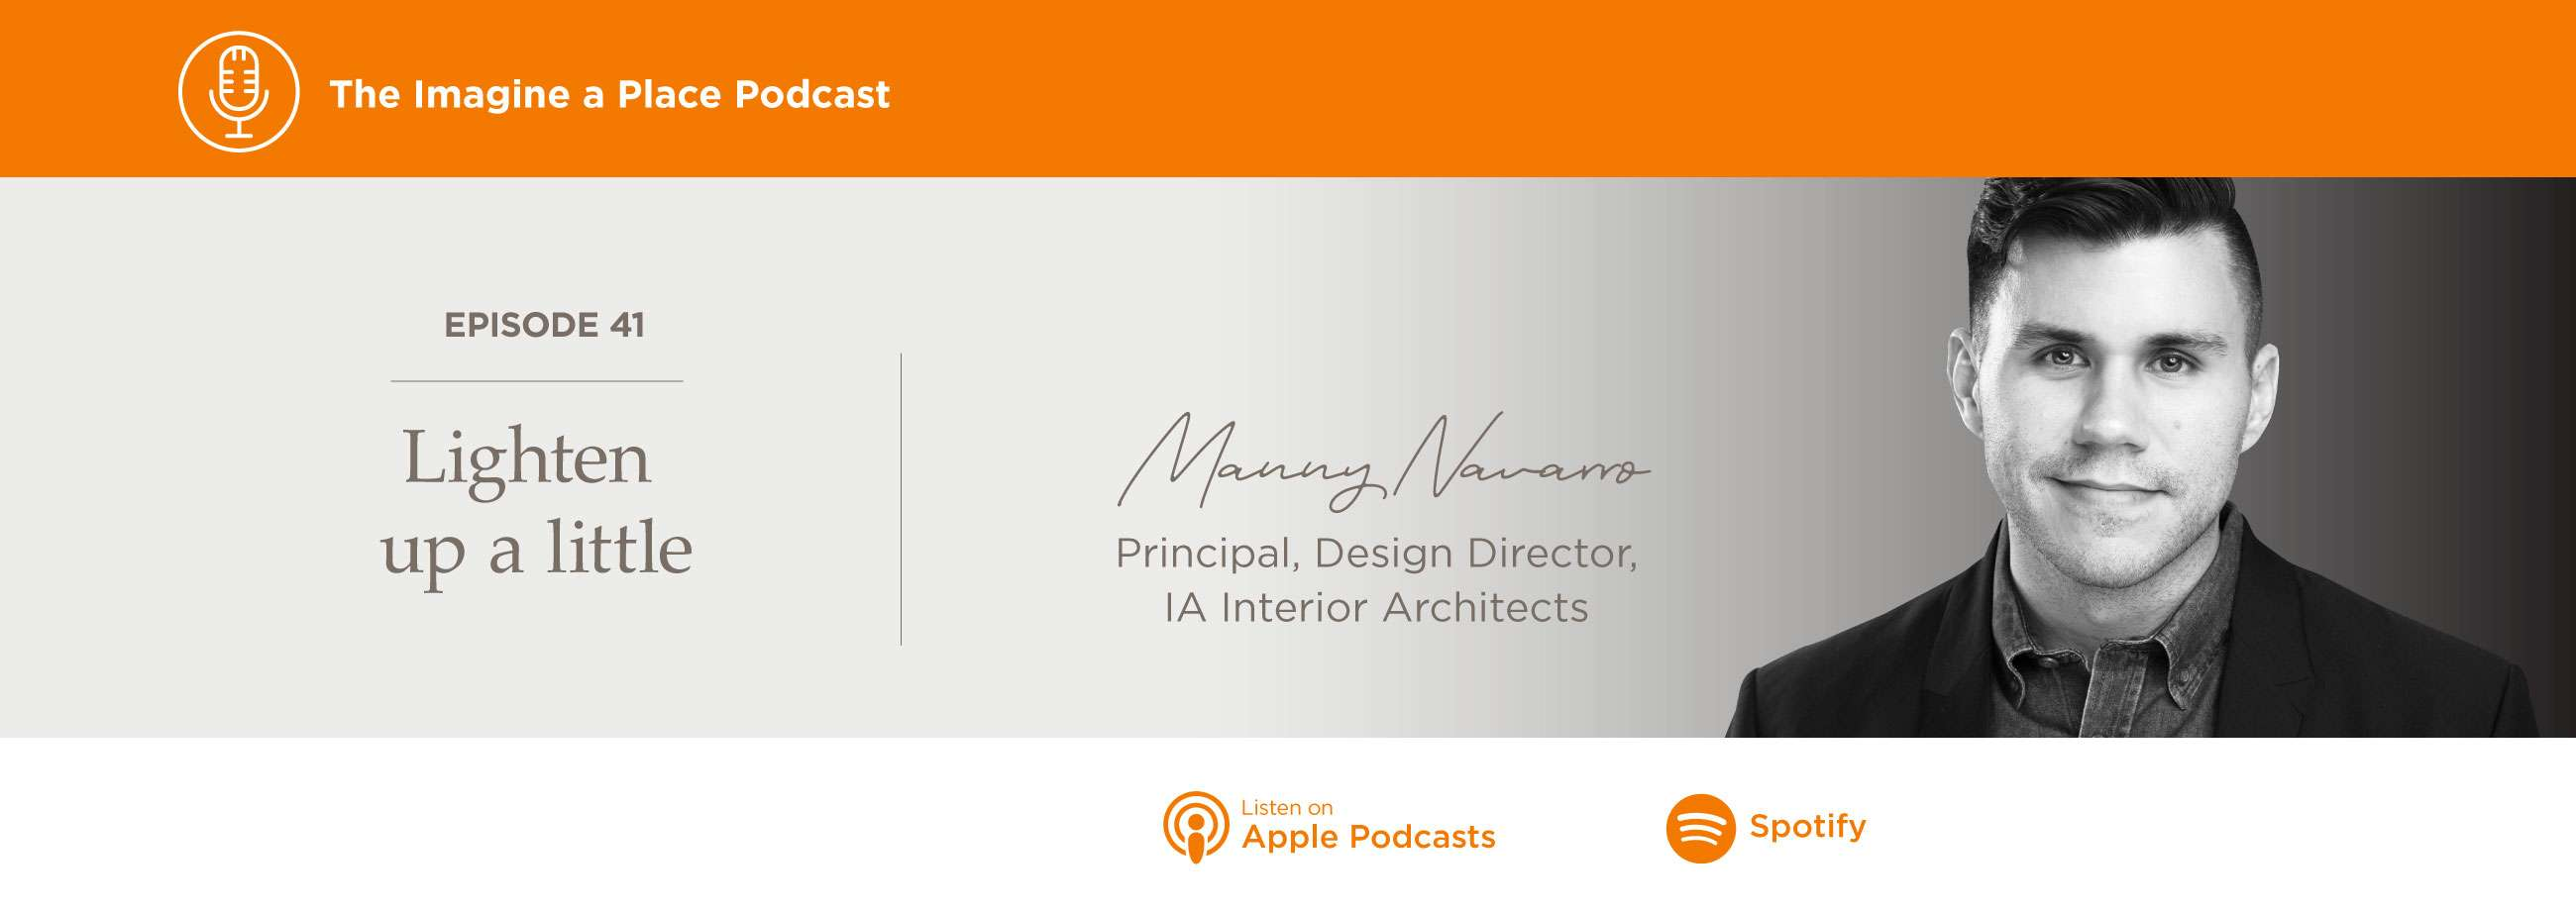 Imagine a Place Podcast with Manny Navarro of IA Architects